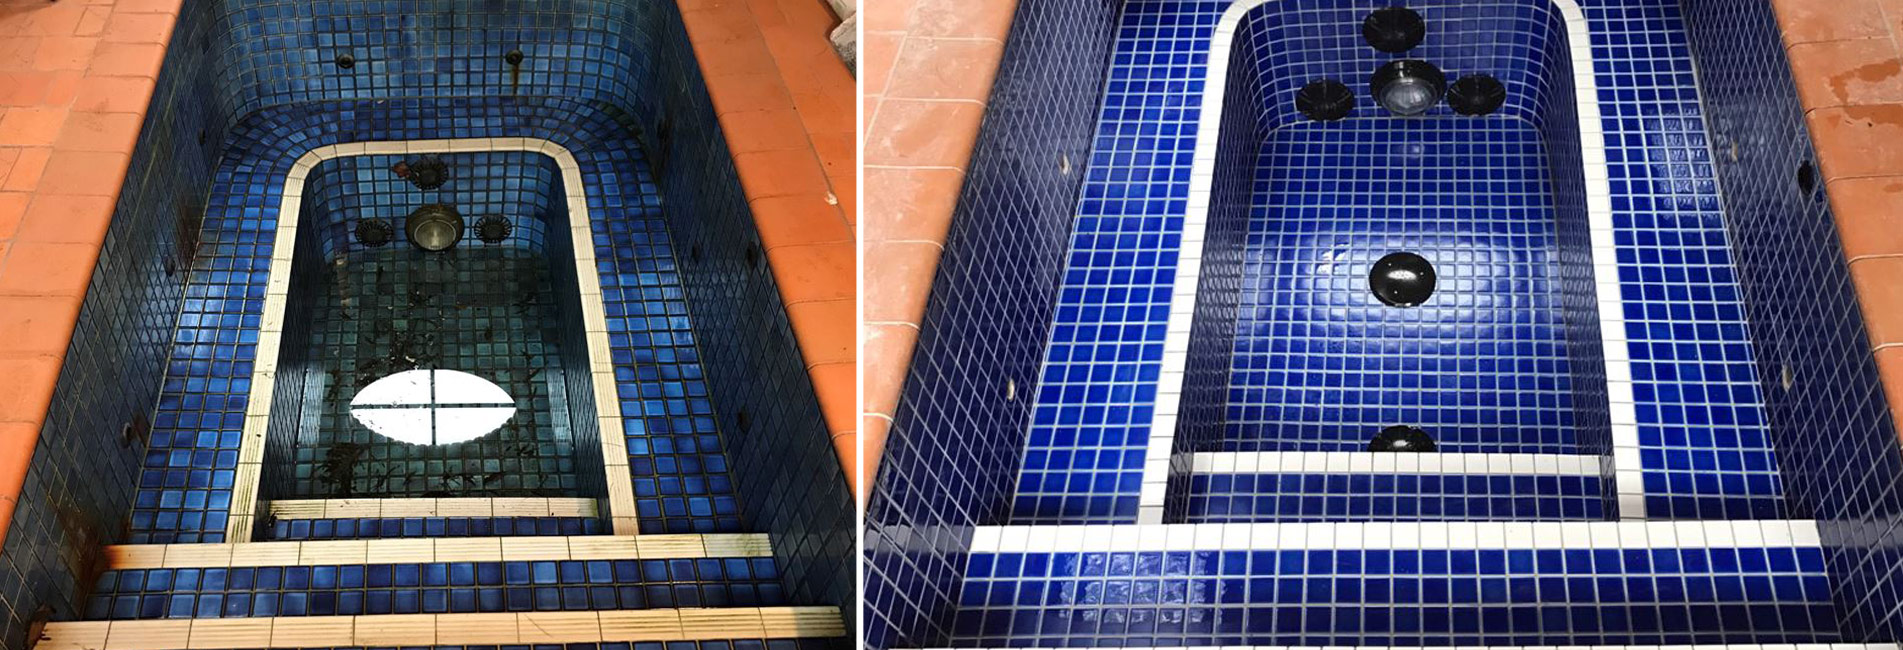 Pool Repairs Narre Warren, Pool Renovations Berwick, Pool Services Cranbourne, Fix Pool Filters Seaford